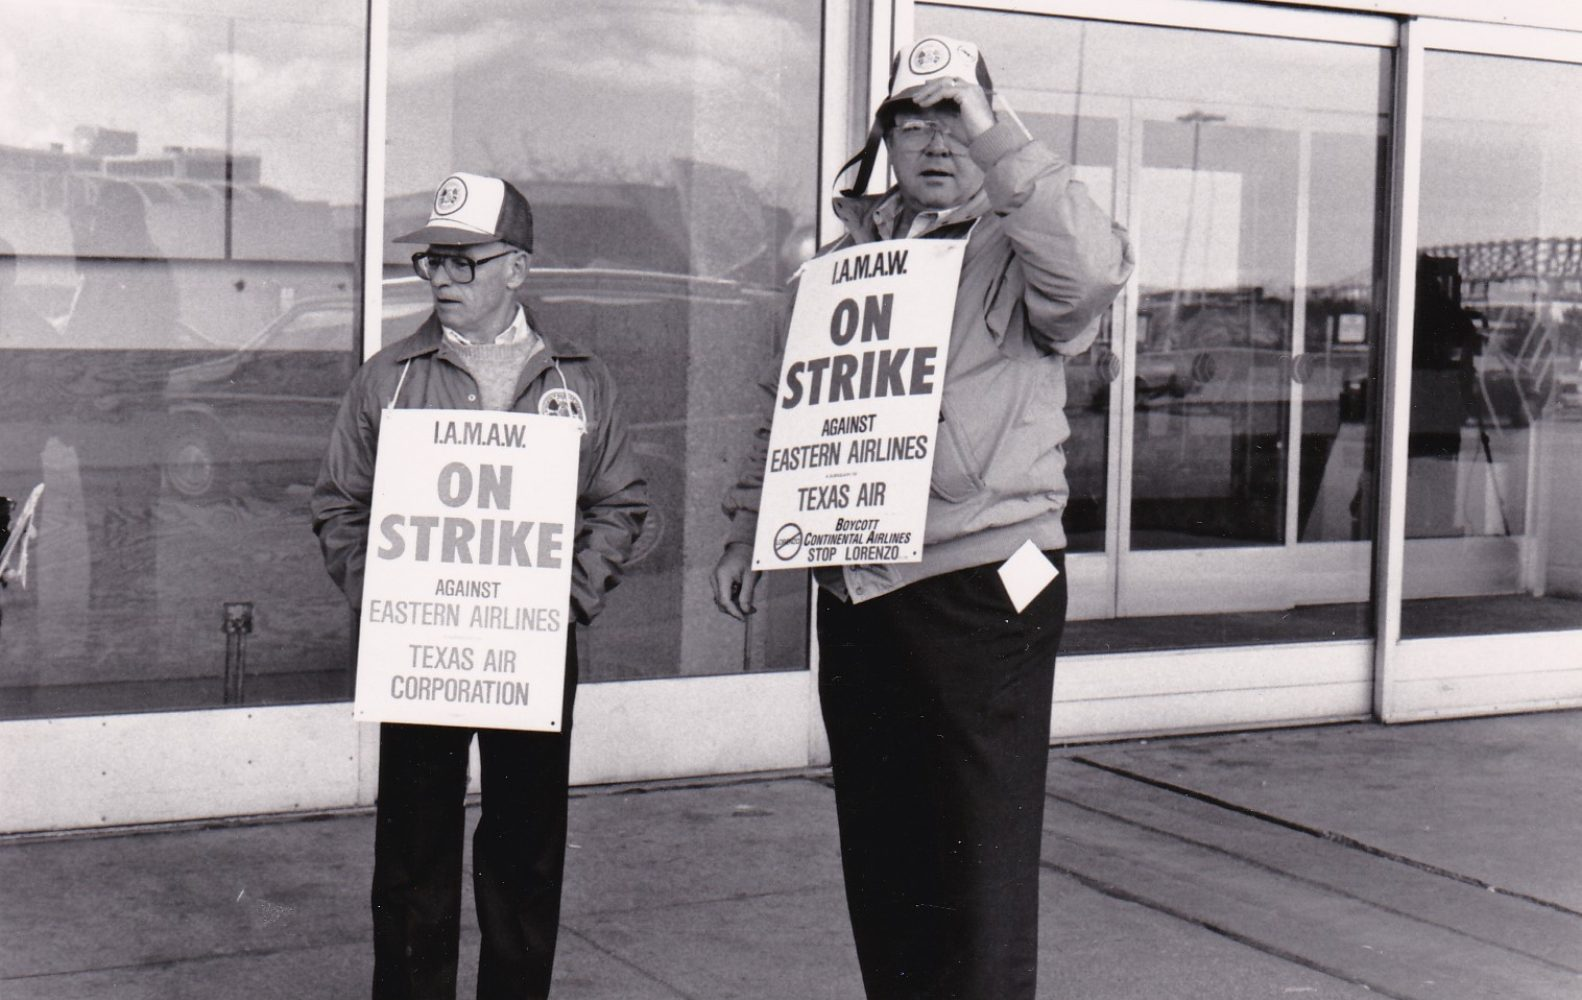 GST Don Wharton Eastern Airlines Strike